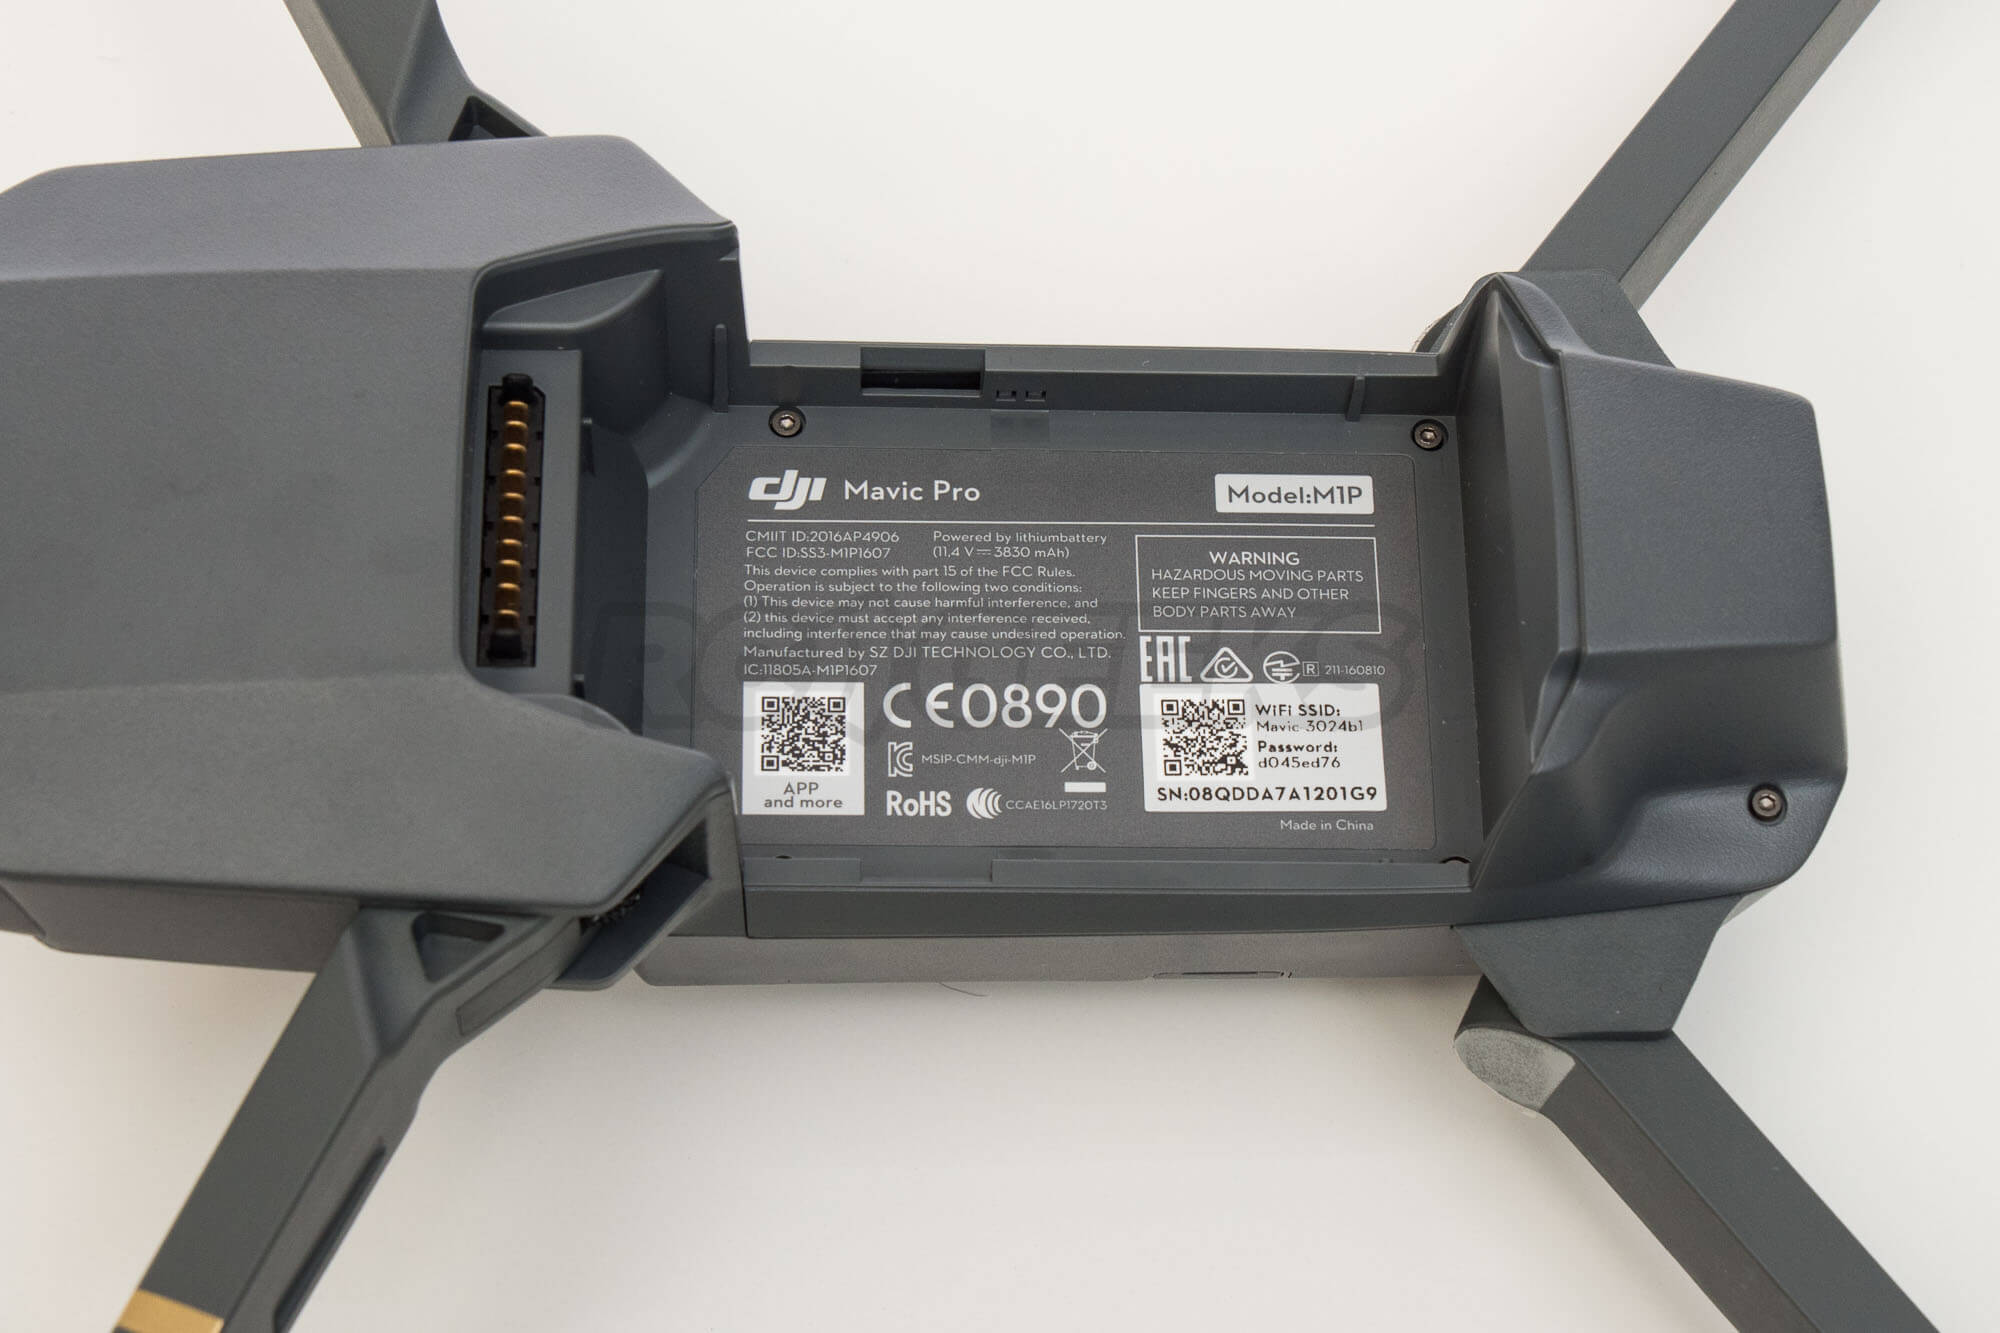 DJI-Mavic-pro-aircraft-battery-tray